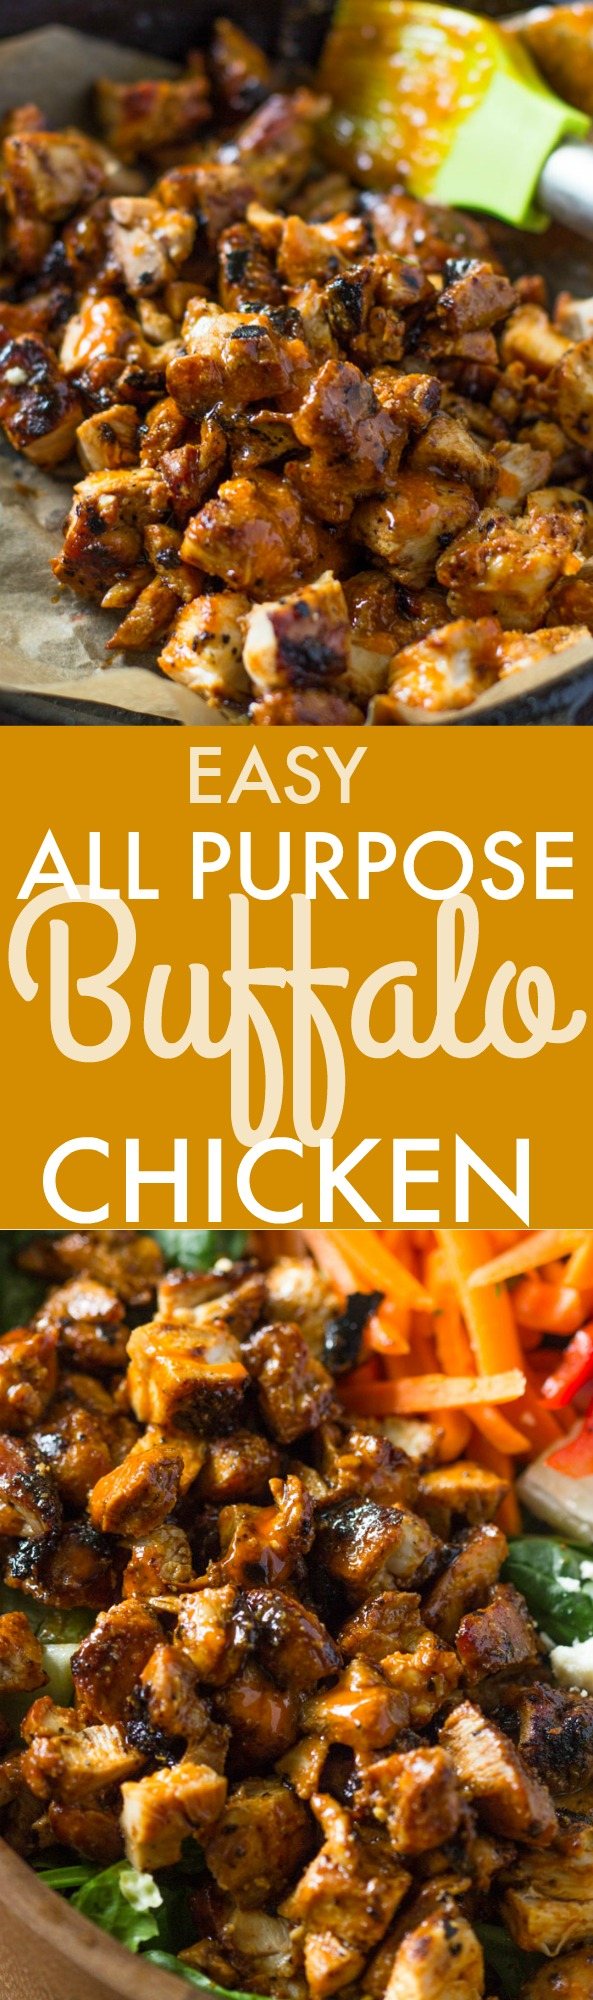 ALL PURPOSE BUFFALO CHICKEN